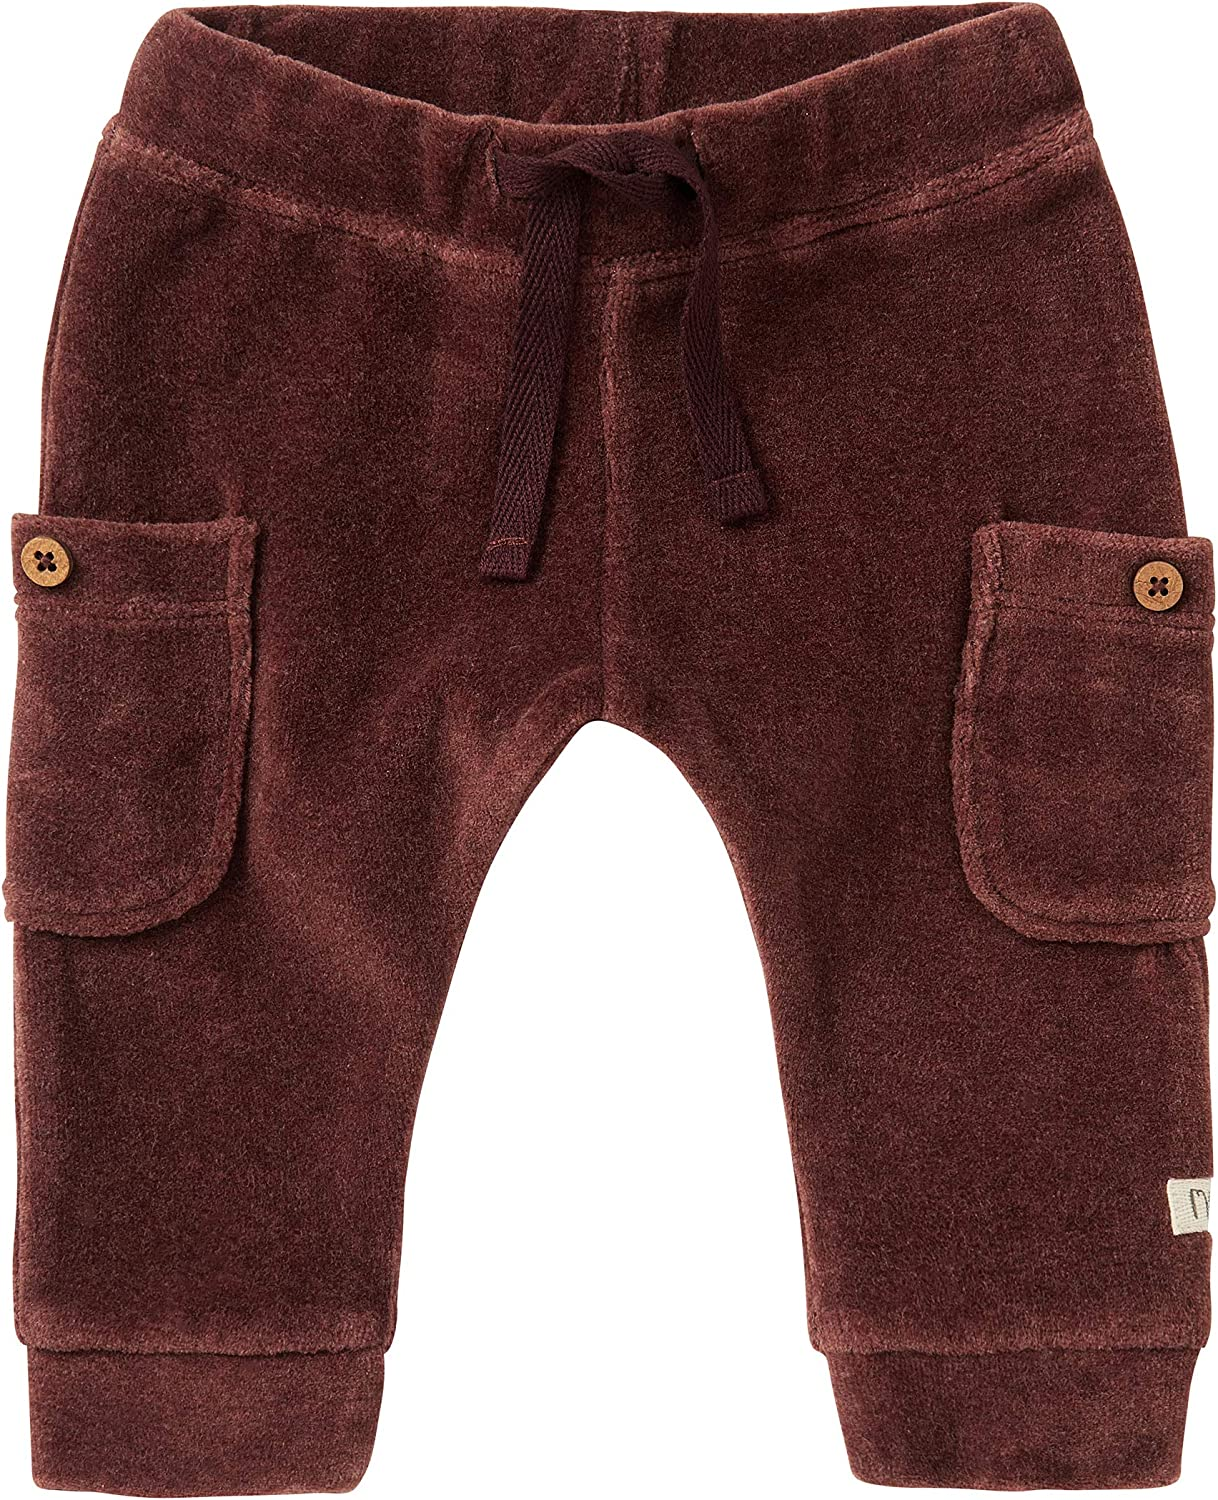 Noppies U Regular Fit Pants Iswepe Pantalones para Bebés